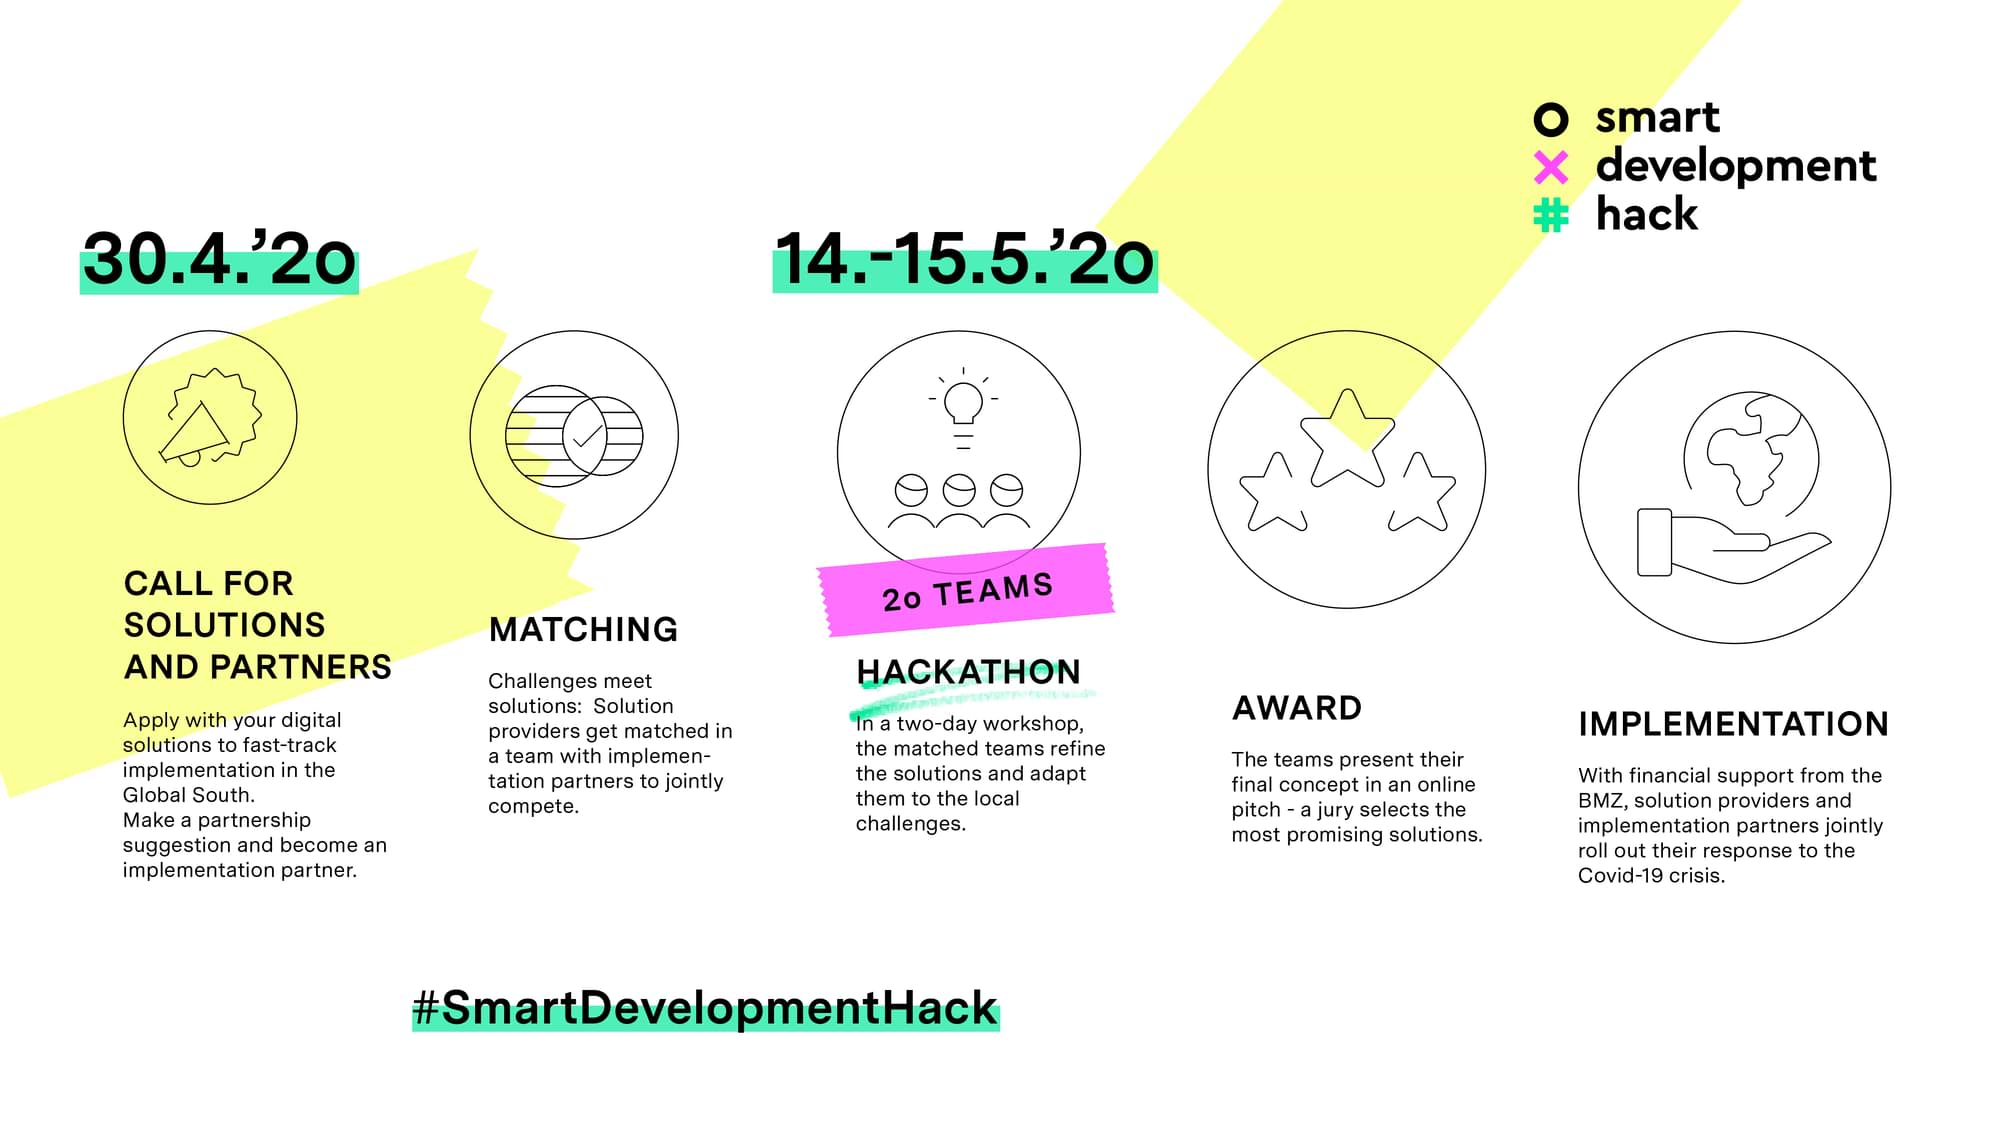 CIEC and the Smart Development Hack